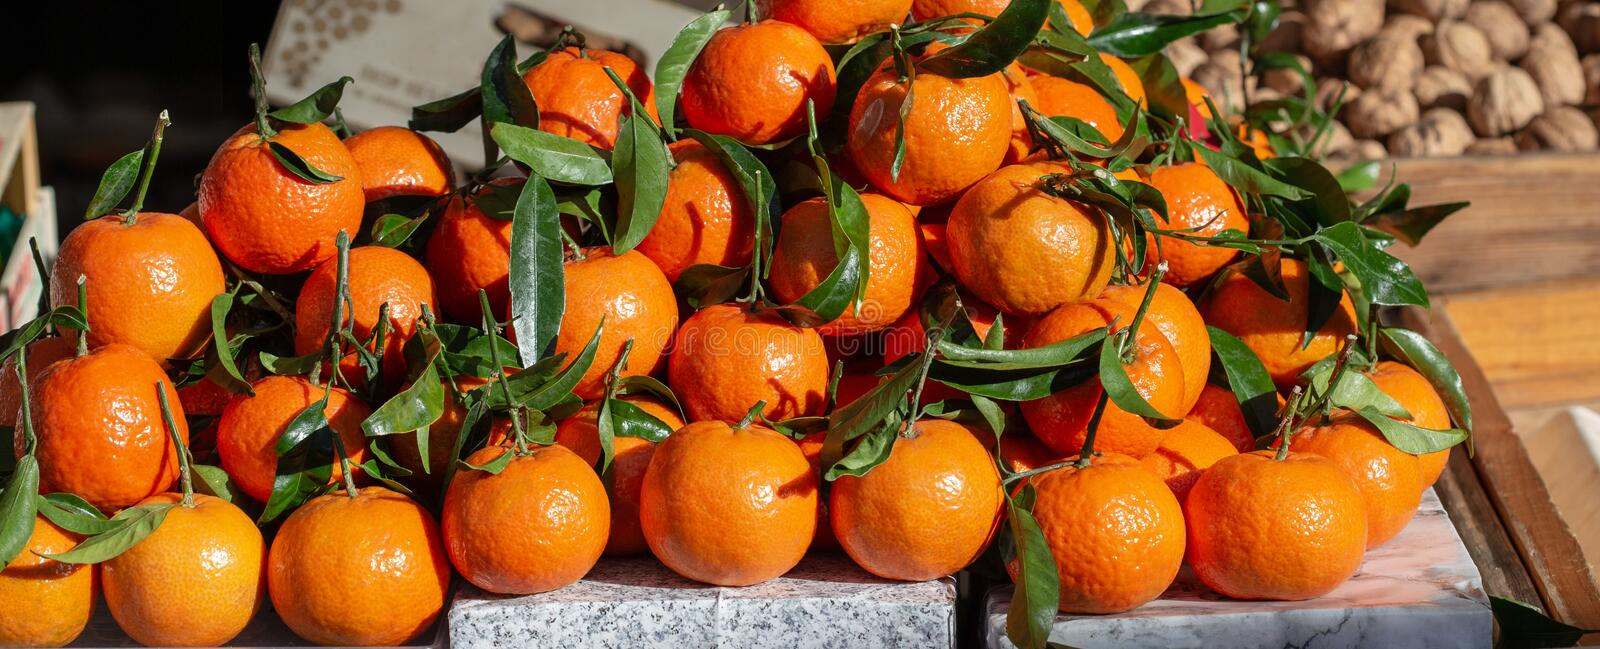 Fresh Mandarins and Clementines Orange Stack, with Leaves, on sale, in the sunlight. Vitamin and healthy Food. stock images